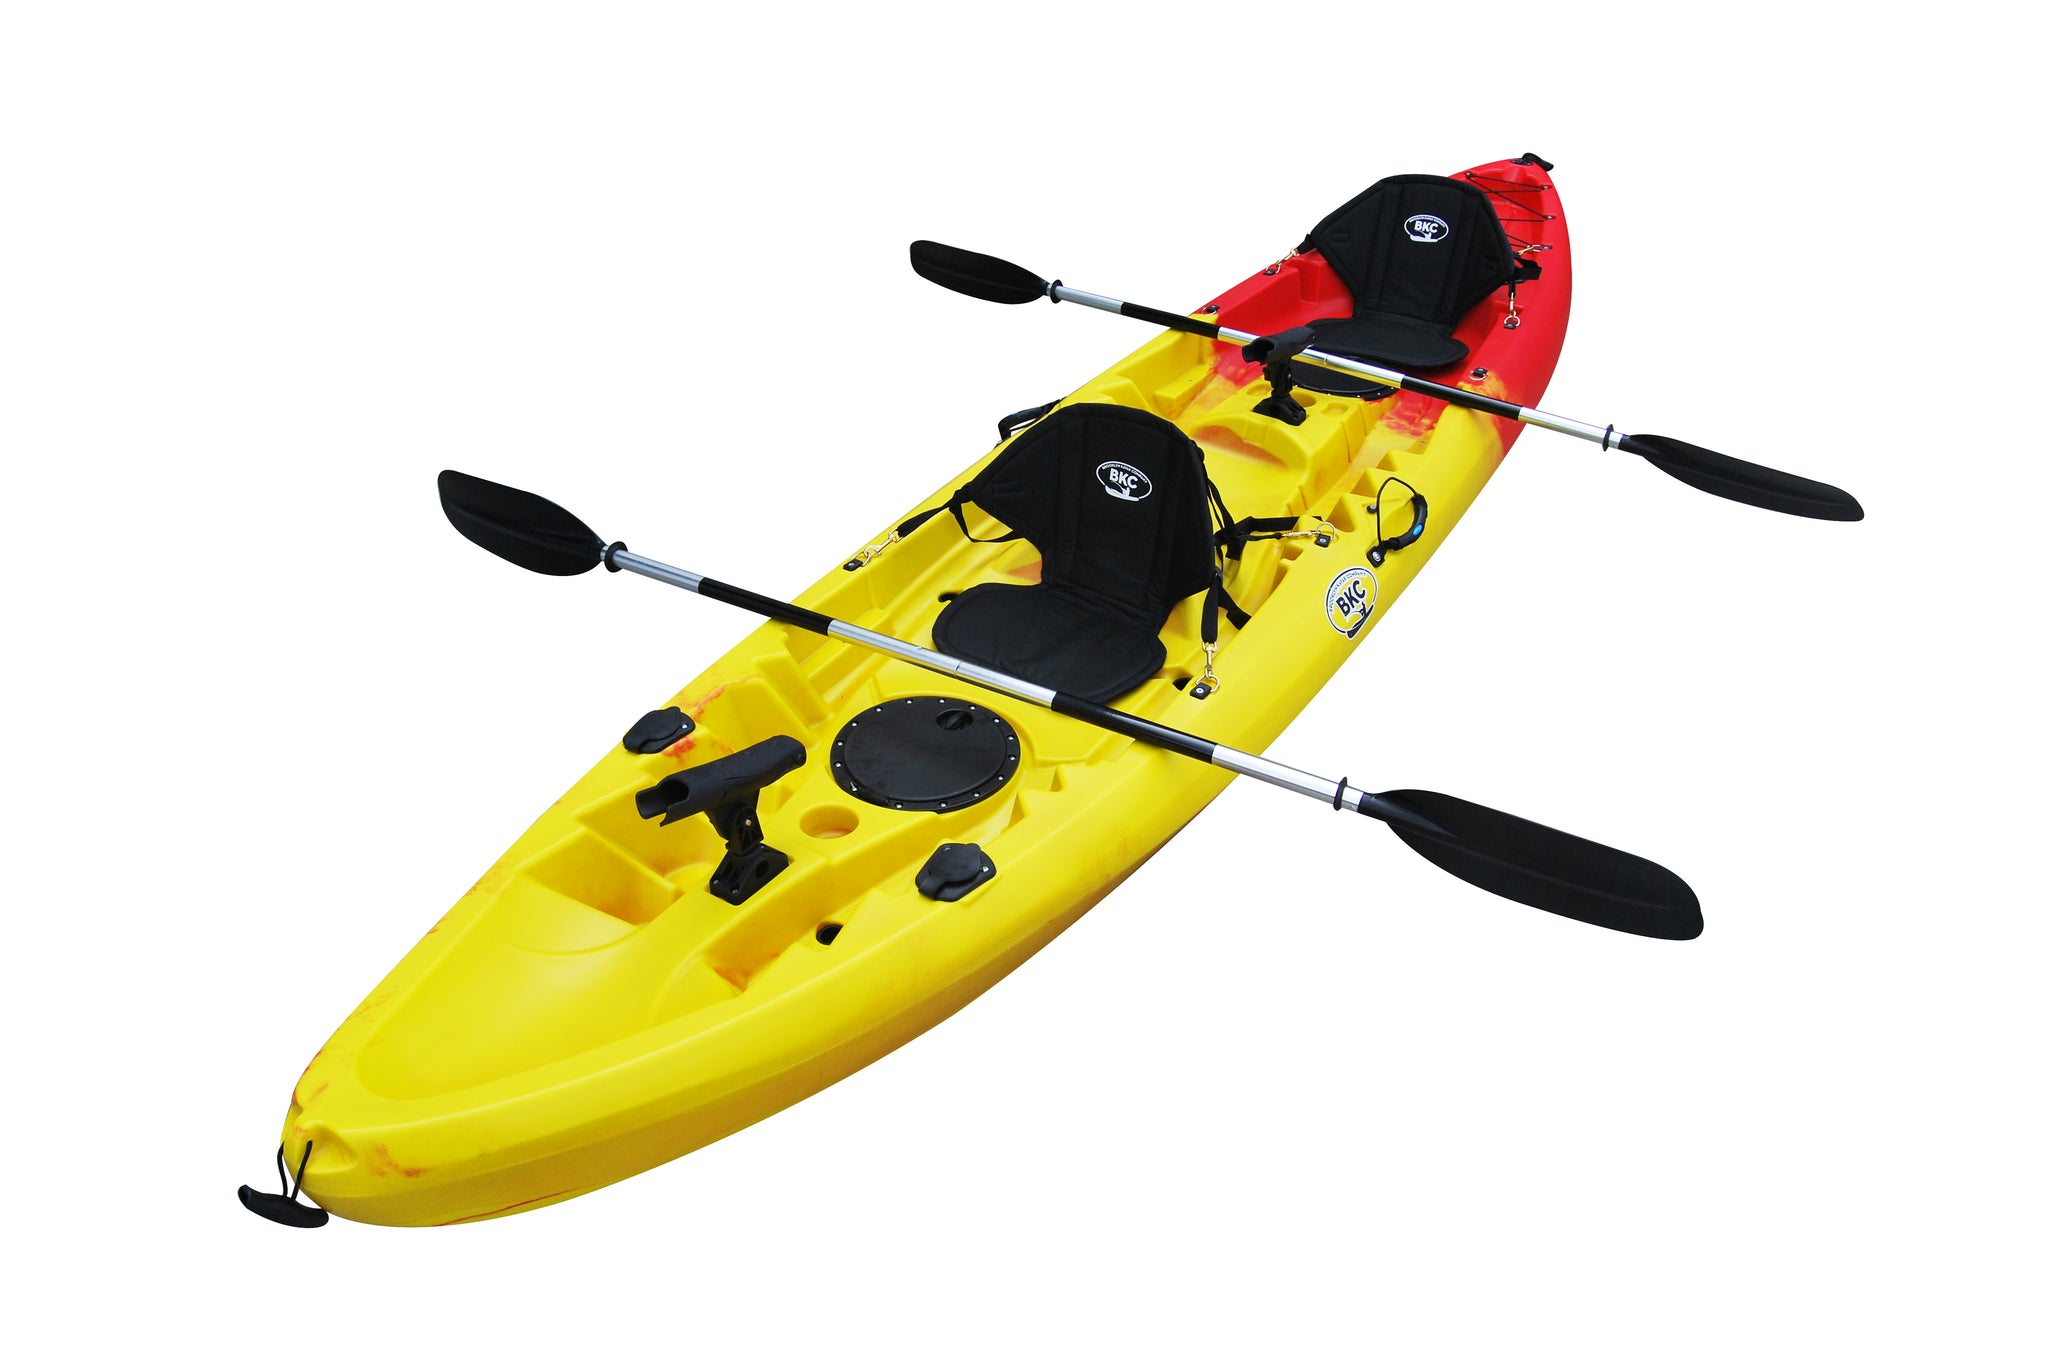 BKC UH TK219 12 Foot 2 Inch Tandem Sit On Top Kayak